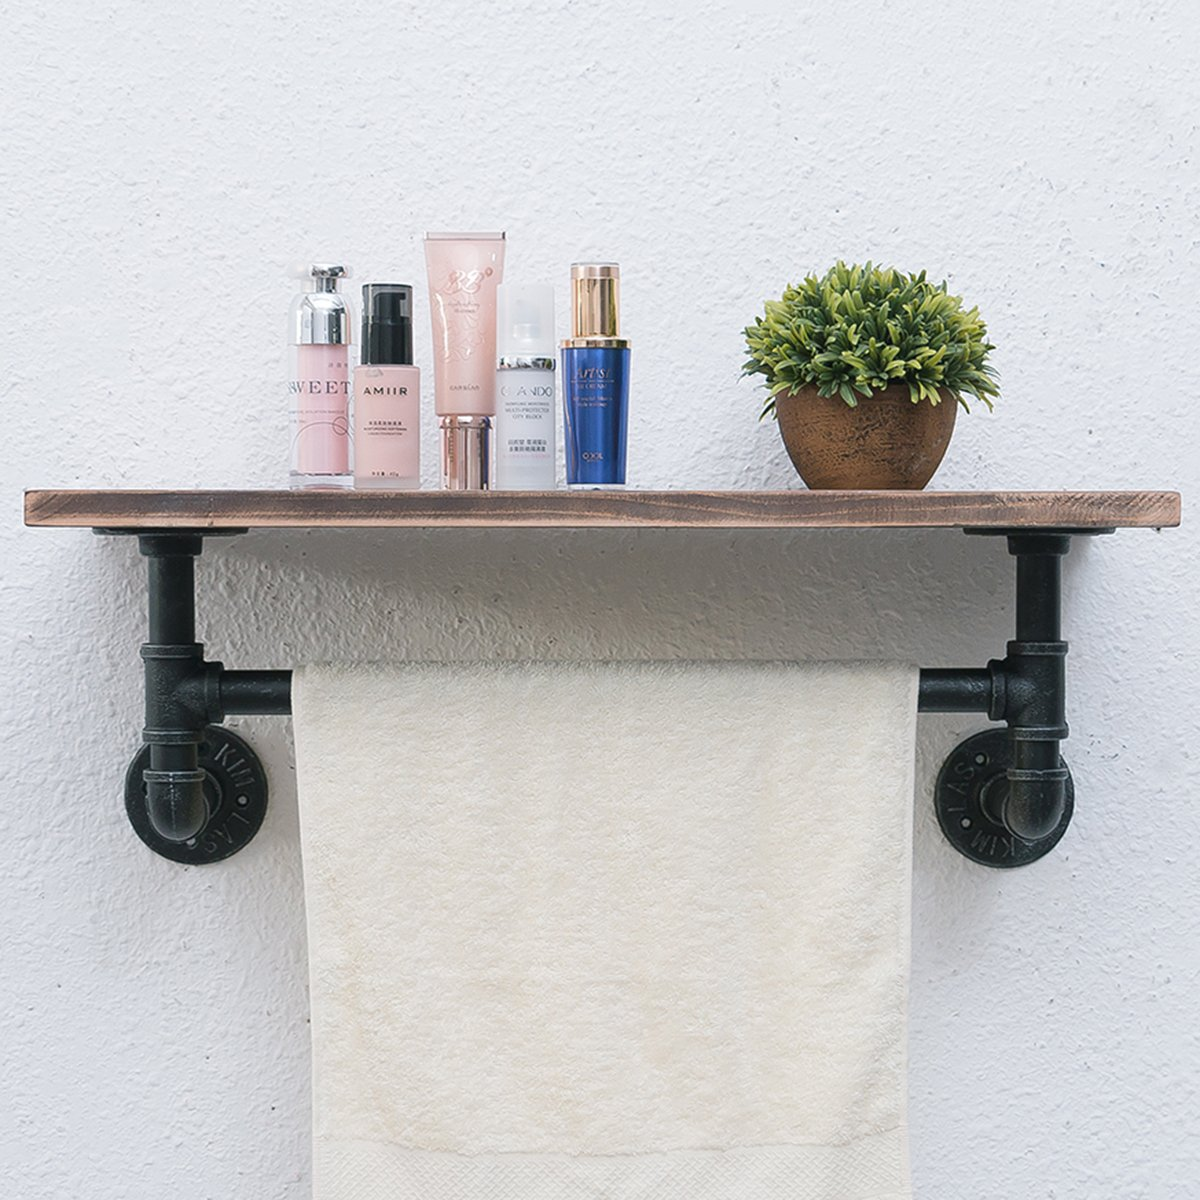 Industrial Pipe Bathroom Shelf,24'' Rustic Wall Shelf with Towel Bar,Industrial Shelving Pipe Shelves Wood Shelf,Towel Racks for Bathroom